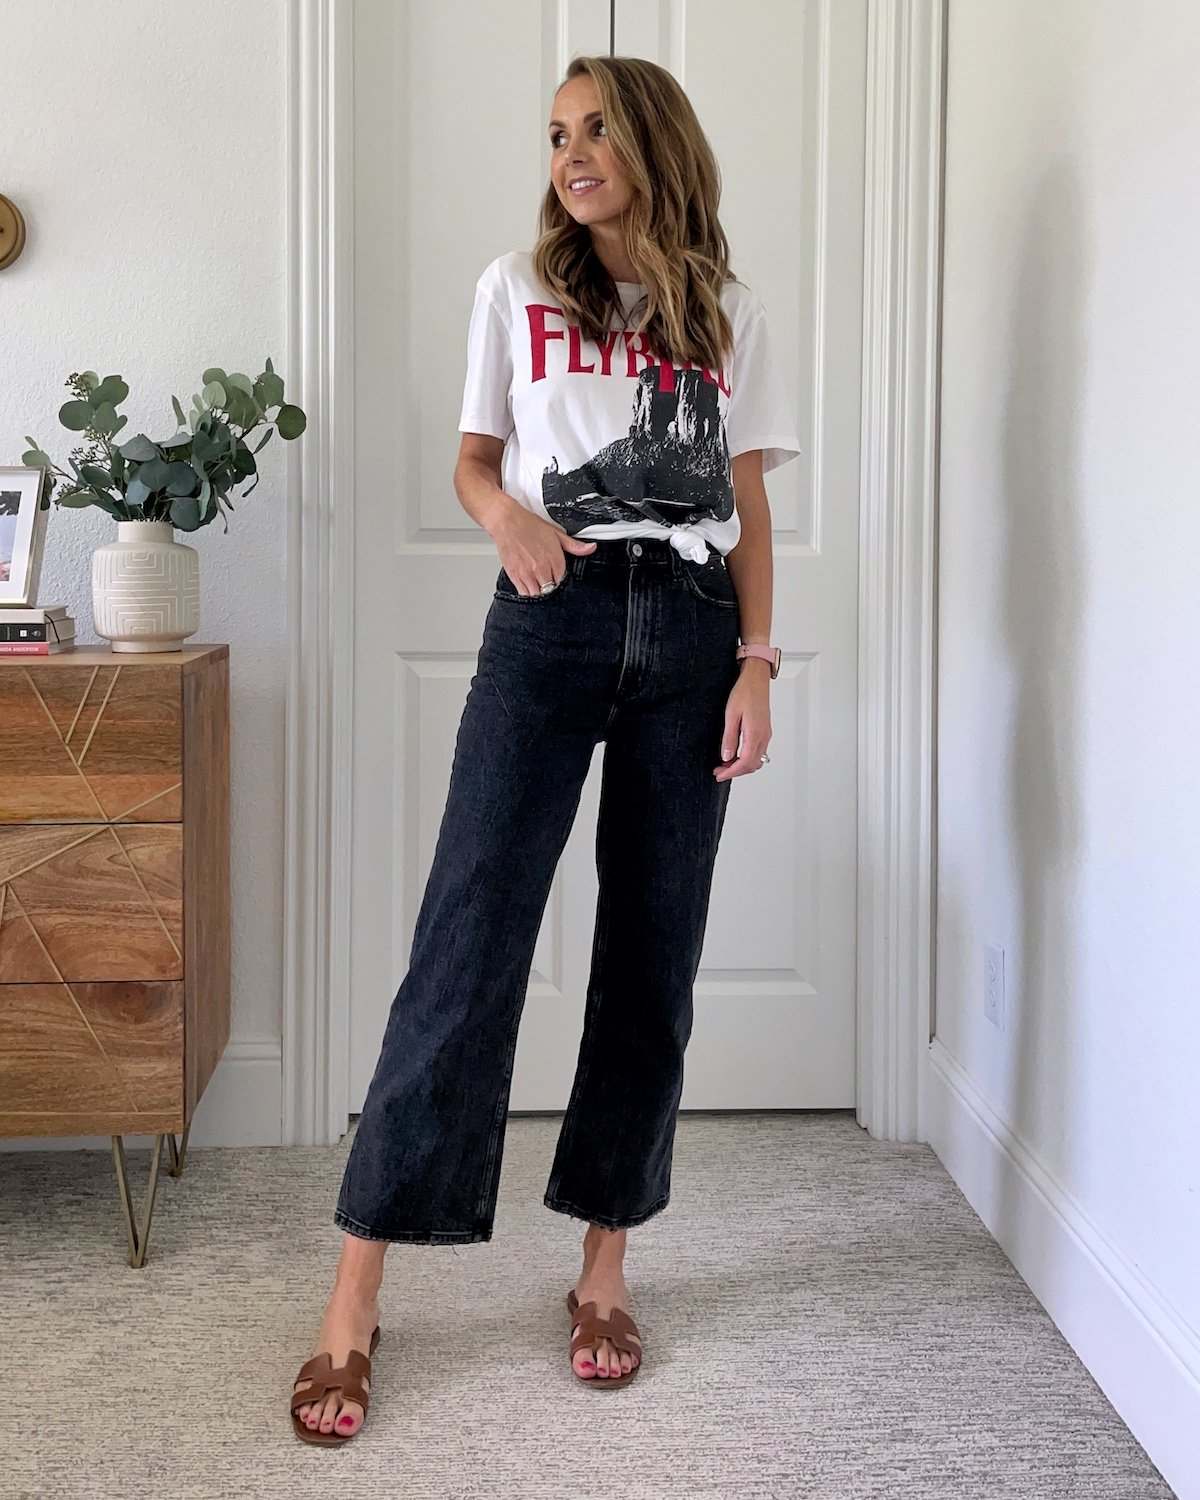 lazy day outfit graphic t-shirt jeans